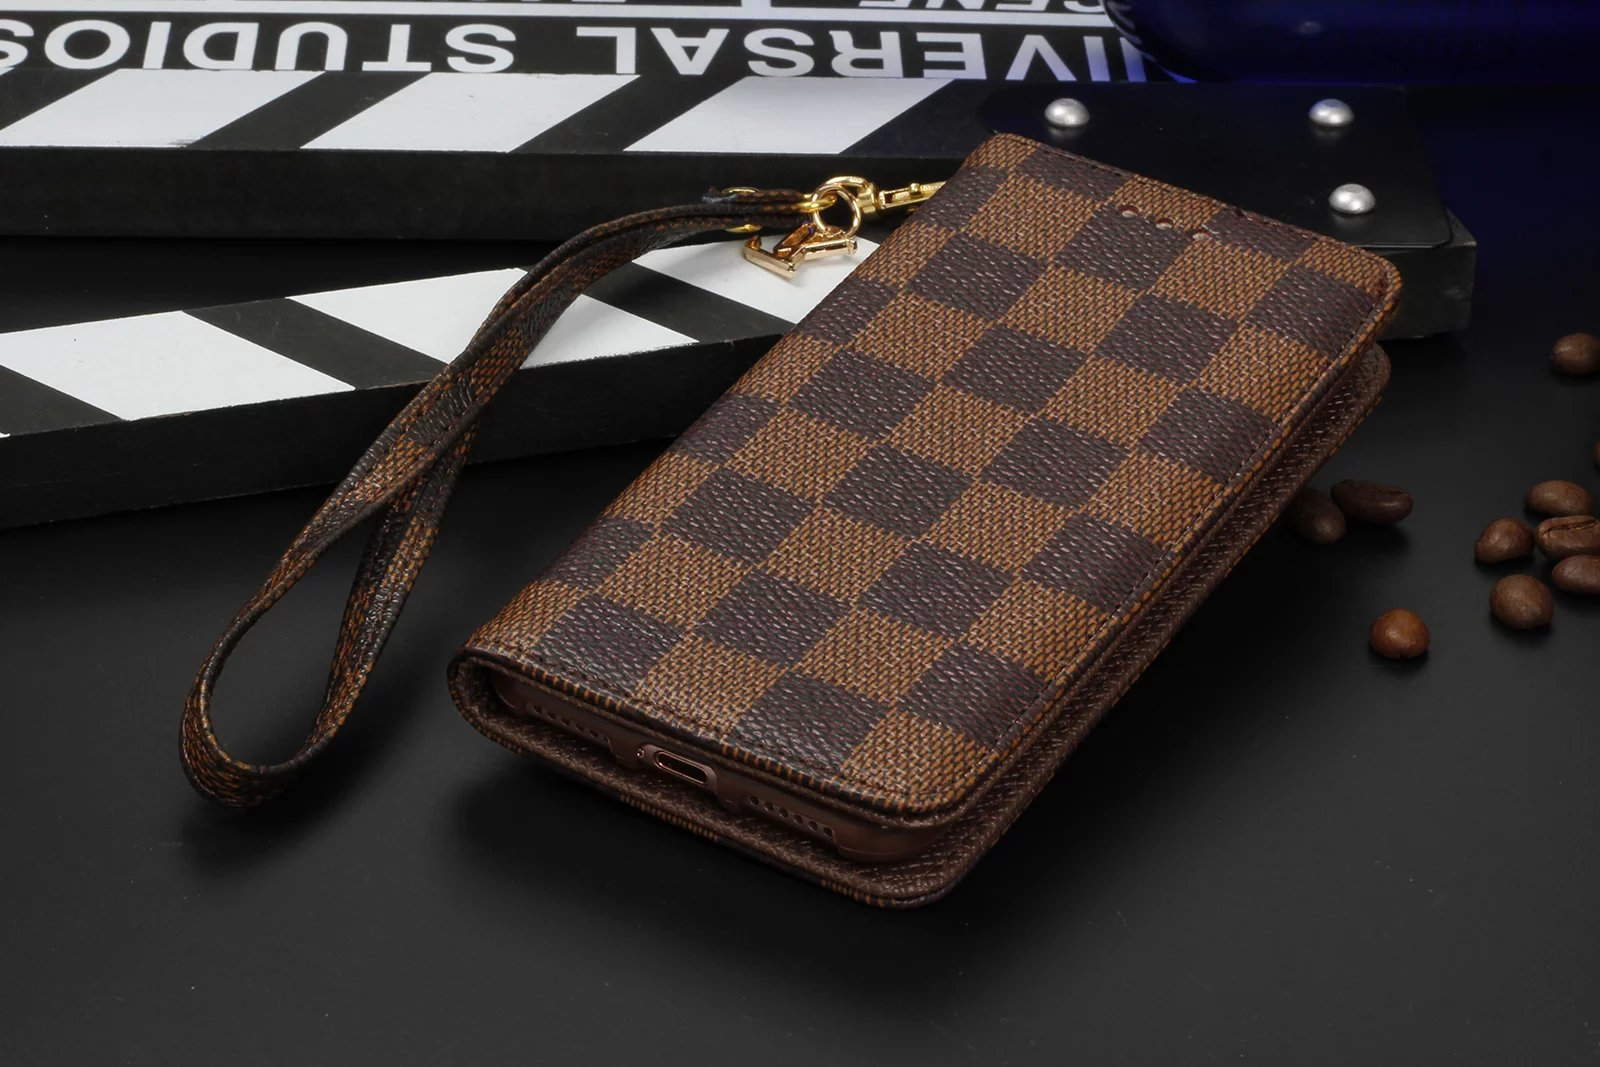 coole iphone hüllen handy hülle iphone Louis Vuitton iphone7 Plus hülle iphone 7 Plus taubschutz handy cover bedrucken las7n iphone 7 Plus ilikon ca7 leuchtende iphone hülle iphone 6 hüllen iphone 7 Plus hülle designer